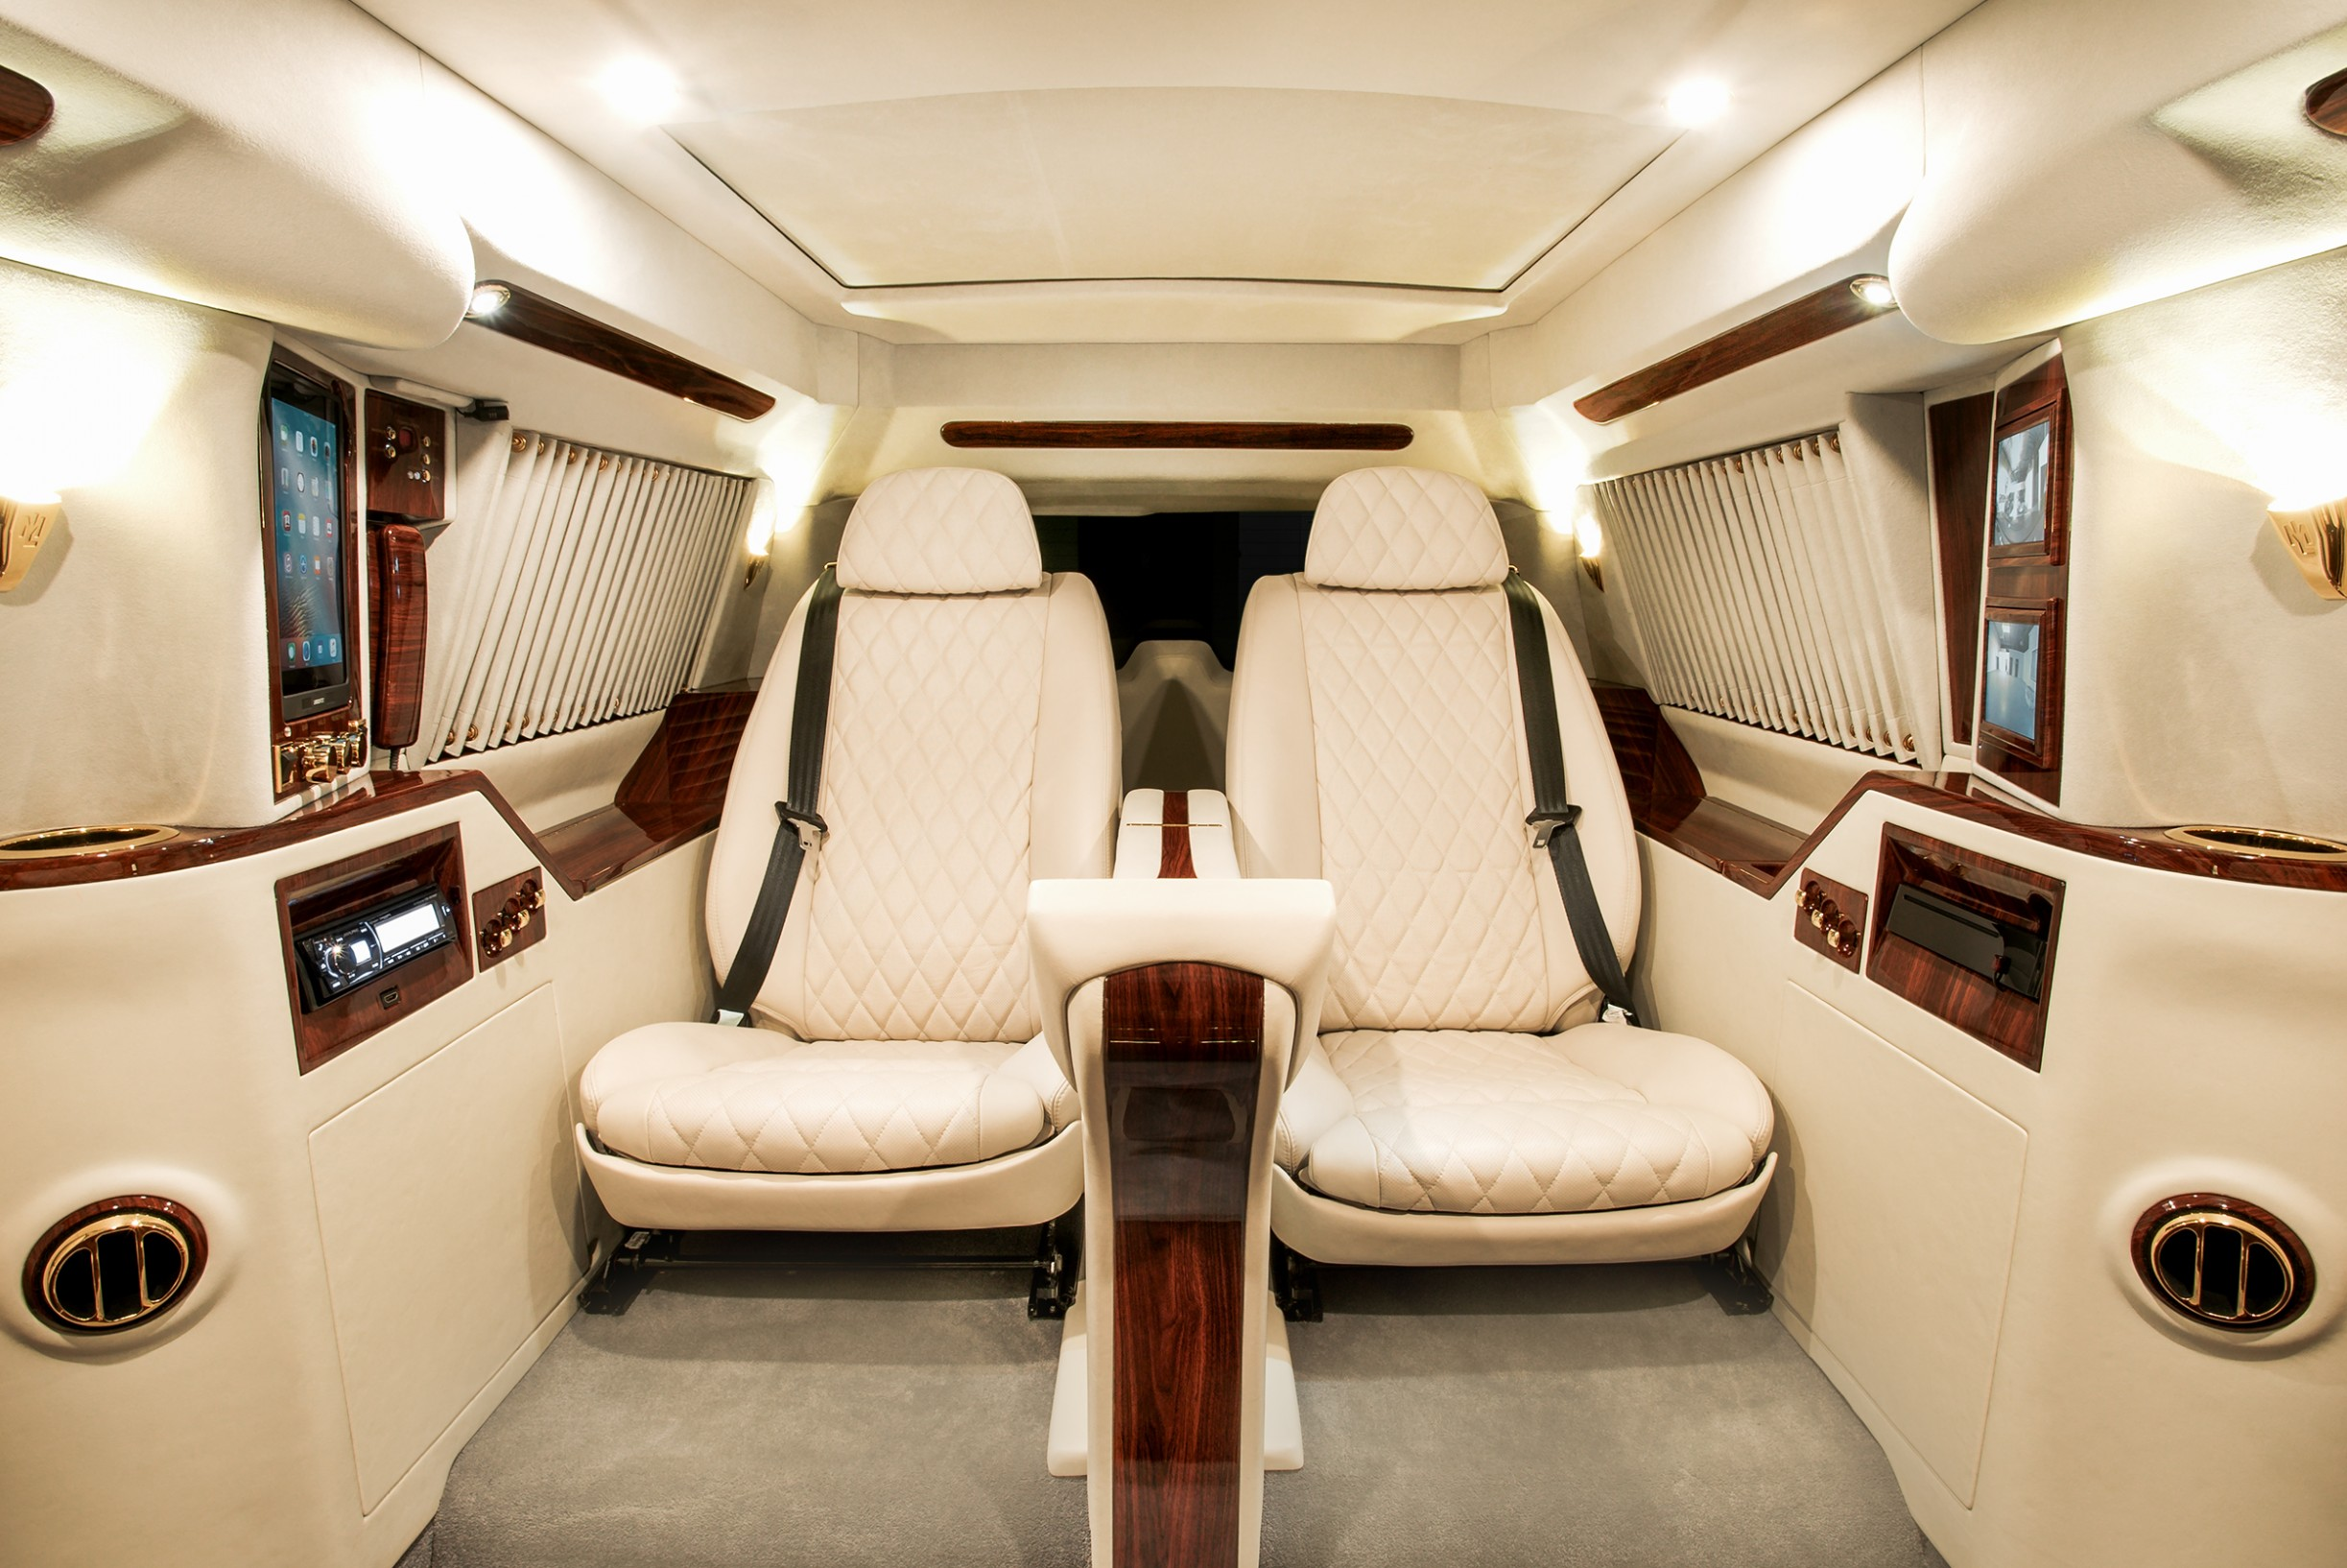 ... The Custom Luxury Touches Found In This Exclusive Vehicle. Complete The  Surround Sound, 48 Inch Samsung LED Curved TV, And Cold Beverage Storage.